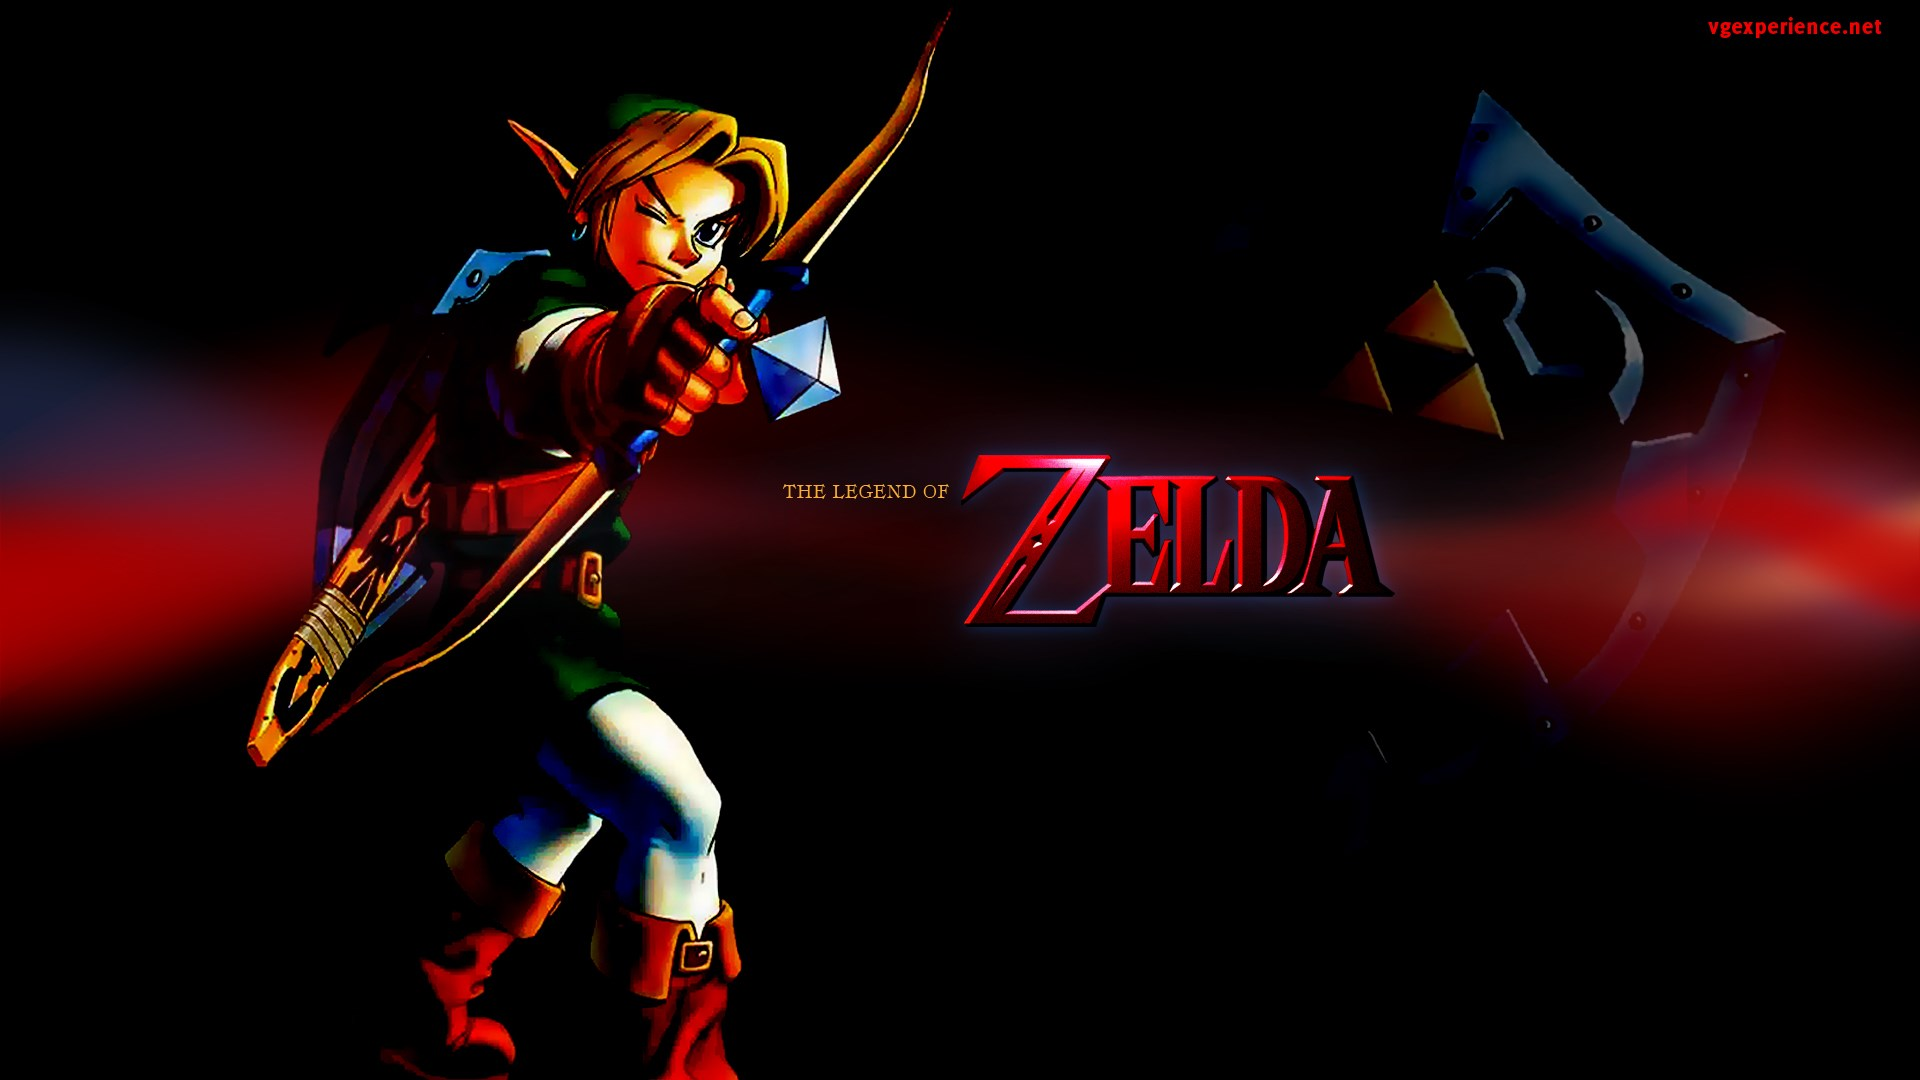 1920x1080-free-and-screensavers-for-the-legend-of-zelda-ocarina-of-time-wallpaper-wp340838